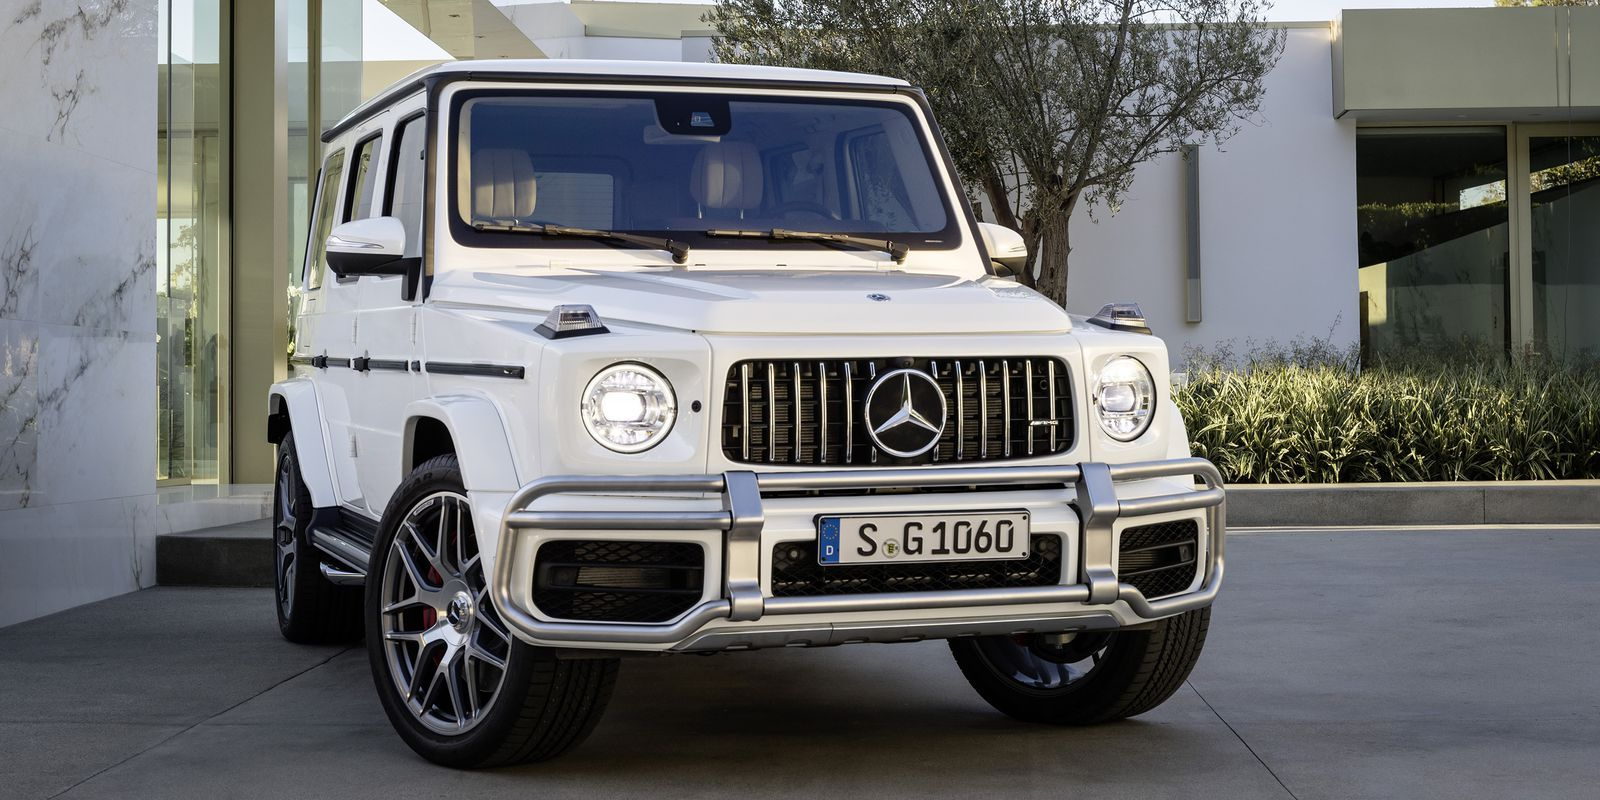 the 2019 mercedes amg g63 is here to go quicker than any 4x4 should rh pinterest com